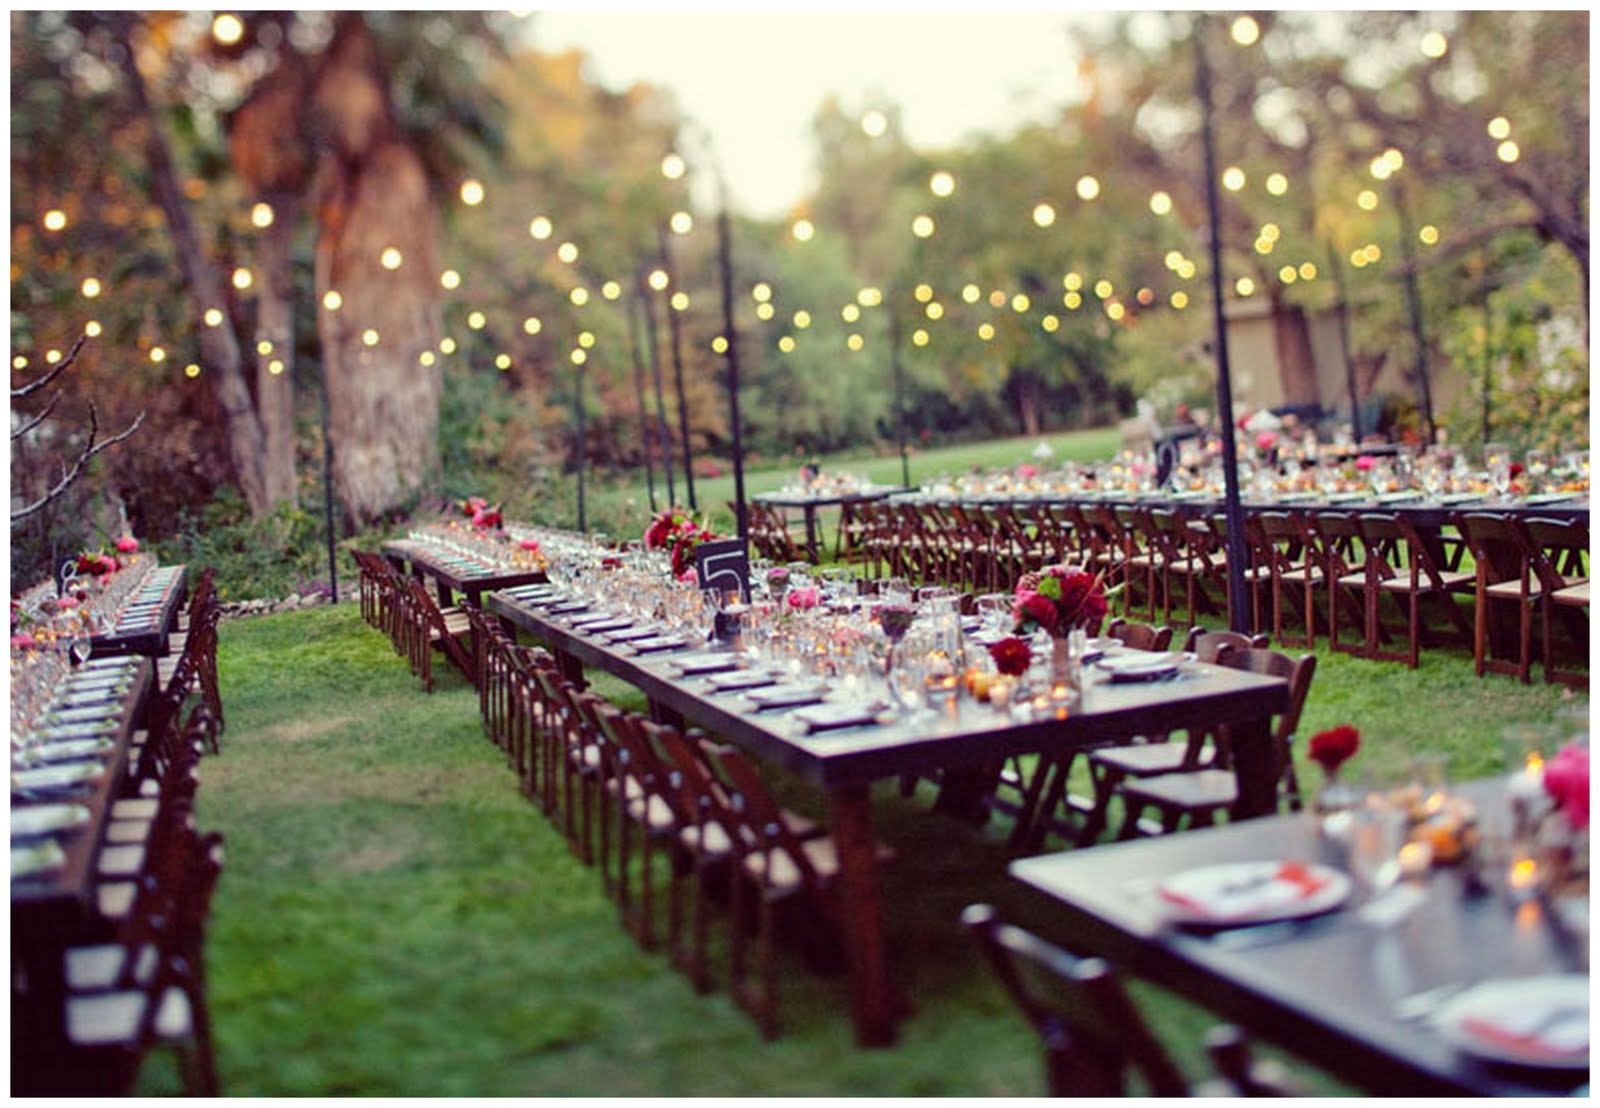 Real enchanted garden wedding kelly steve for Backyard wedding decoration ideas